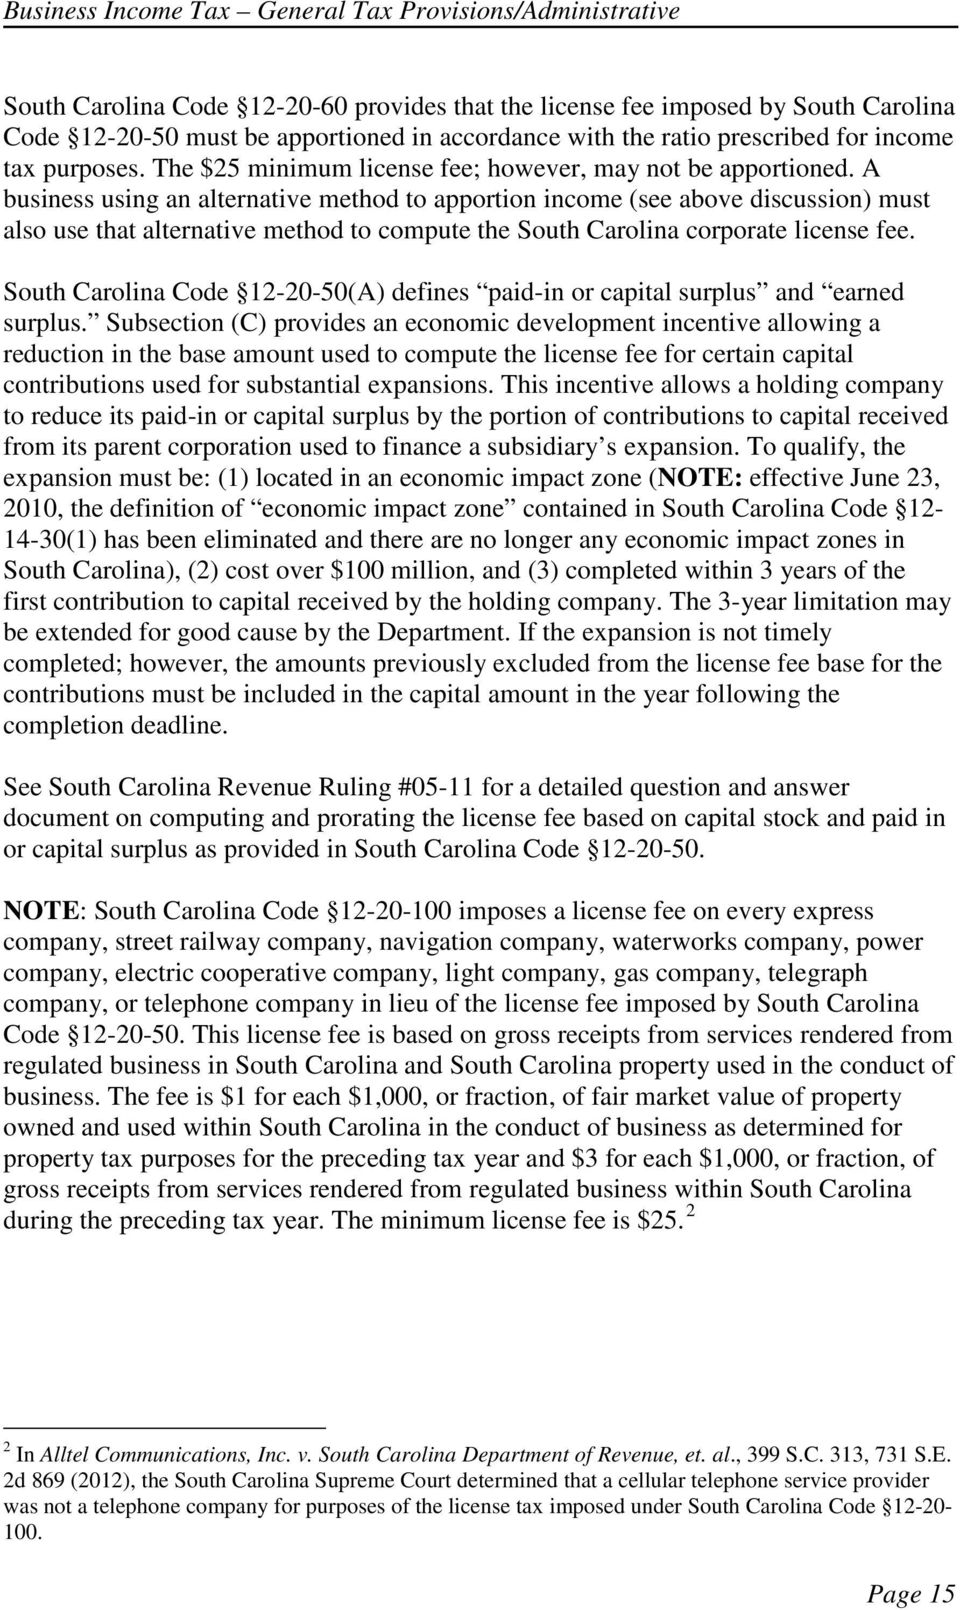 A business using an alternative method to apportion income (see above discussion) must also use that alternative method to compute the South Carolina corporate license fee.